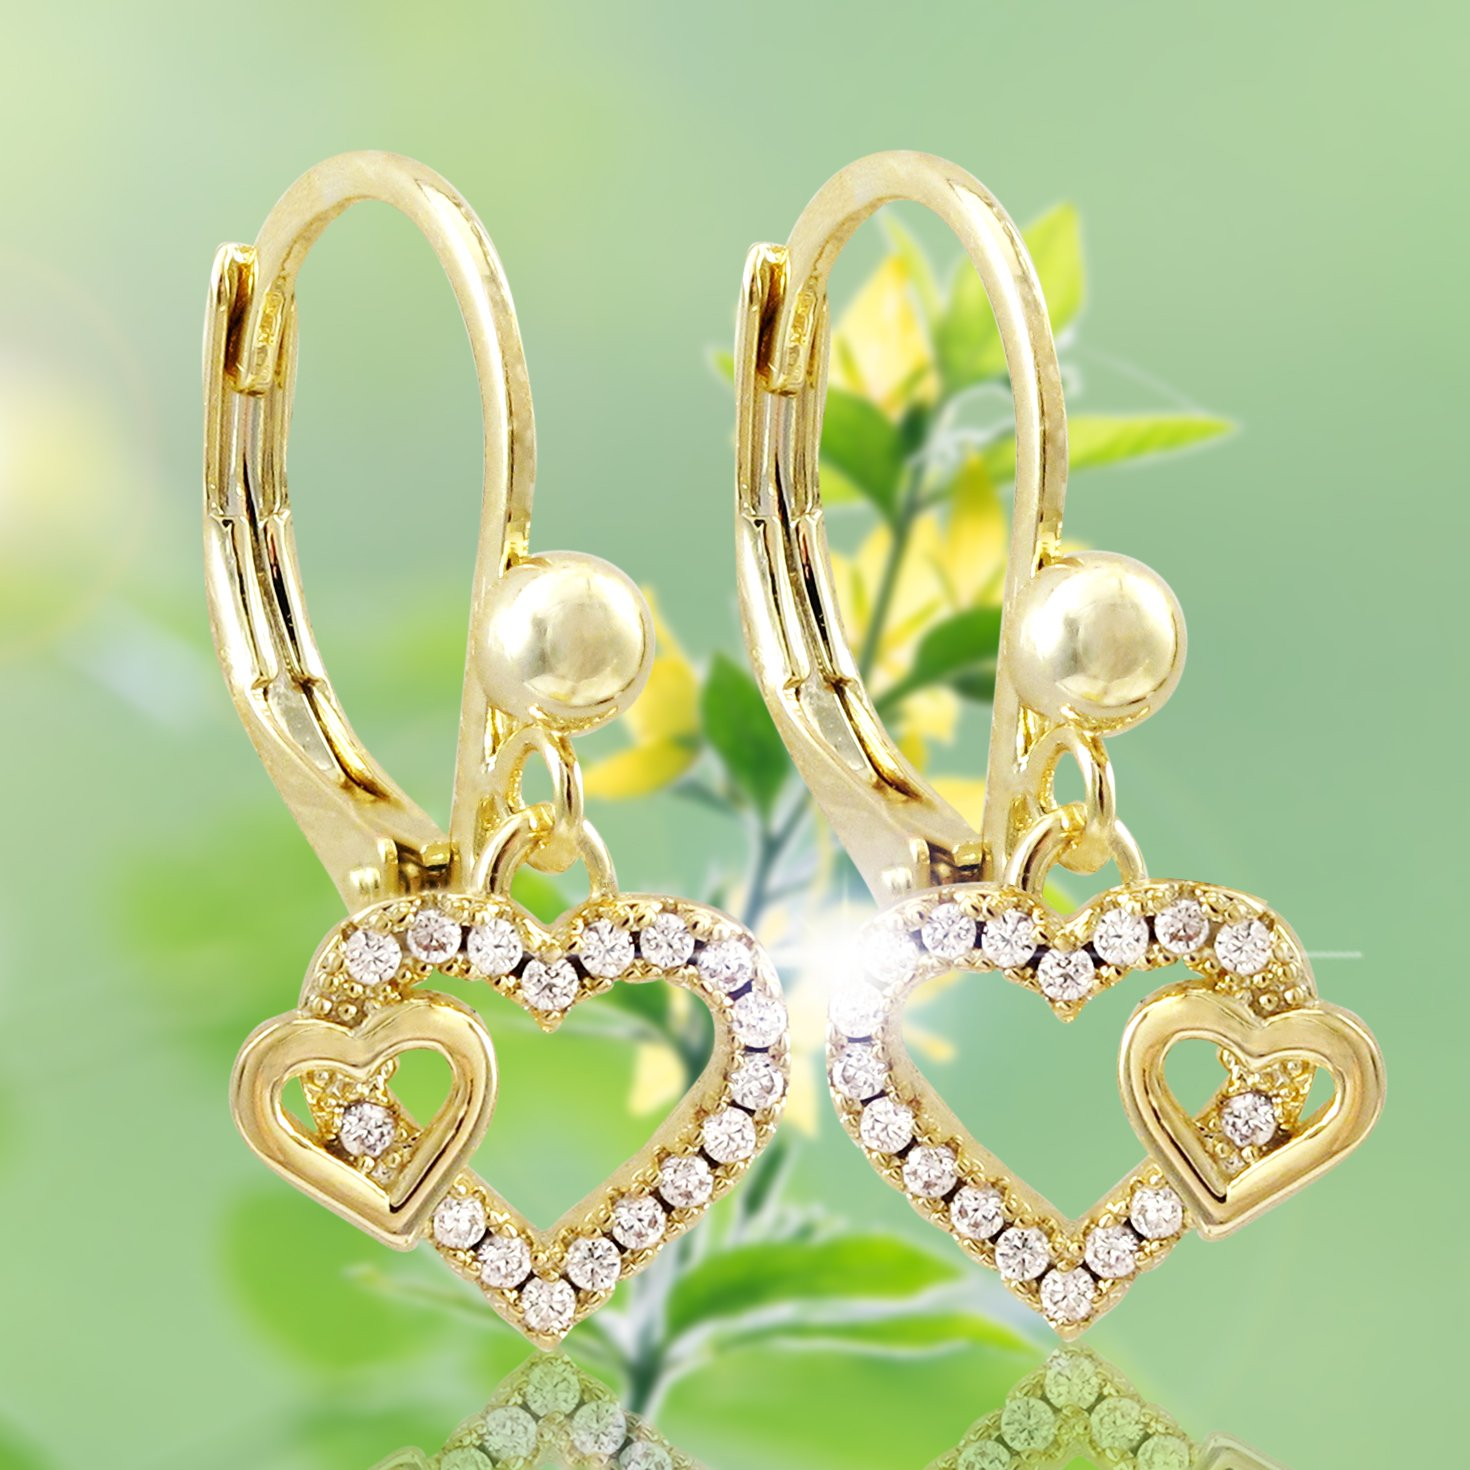 Ivy and Max Gold Finish Pave Cubic Zirconia Childrens Dangling Double Heart Earrings